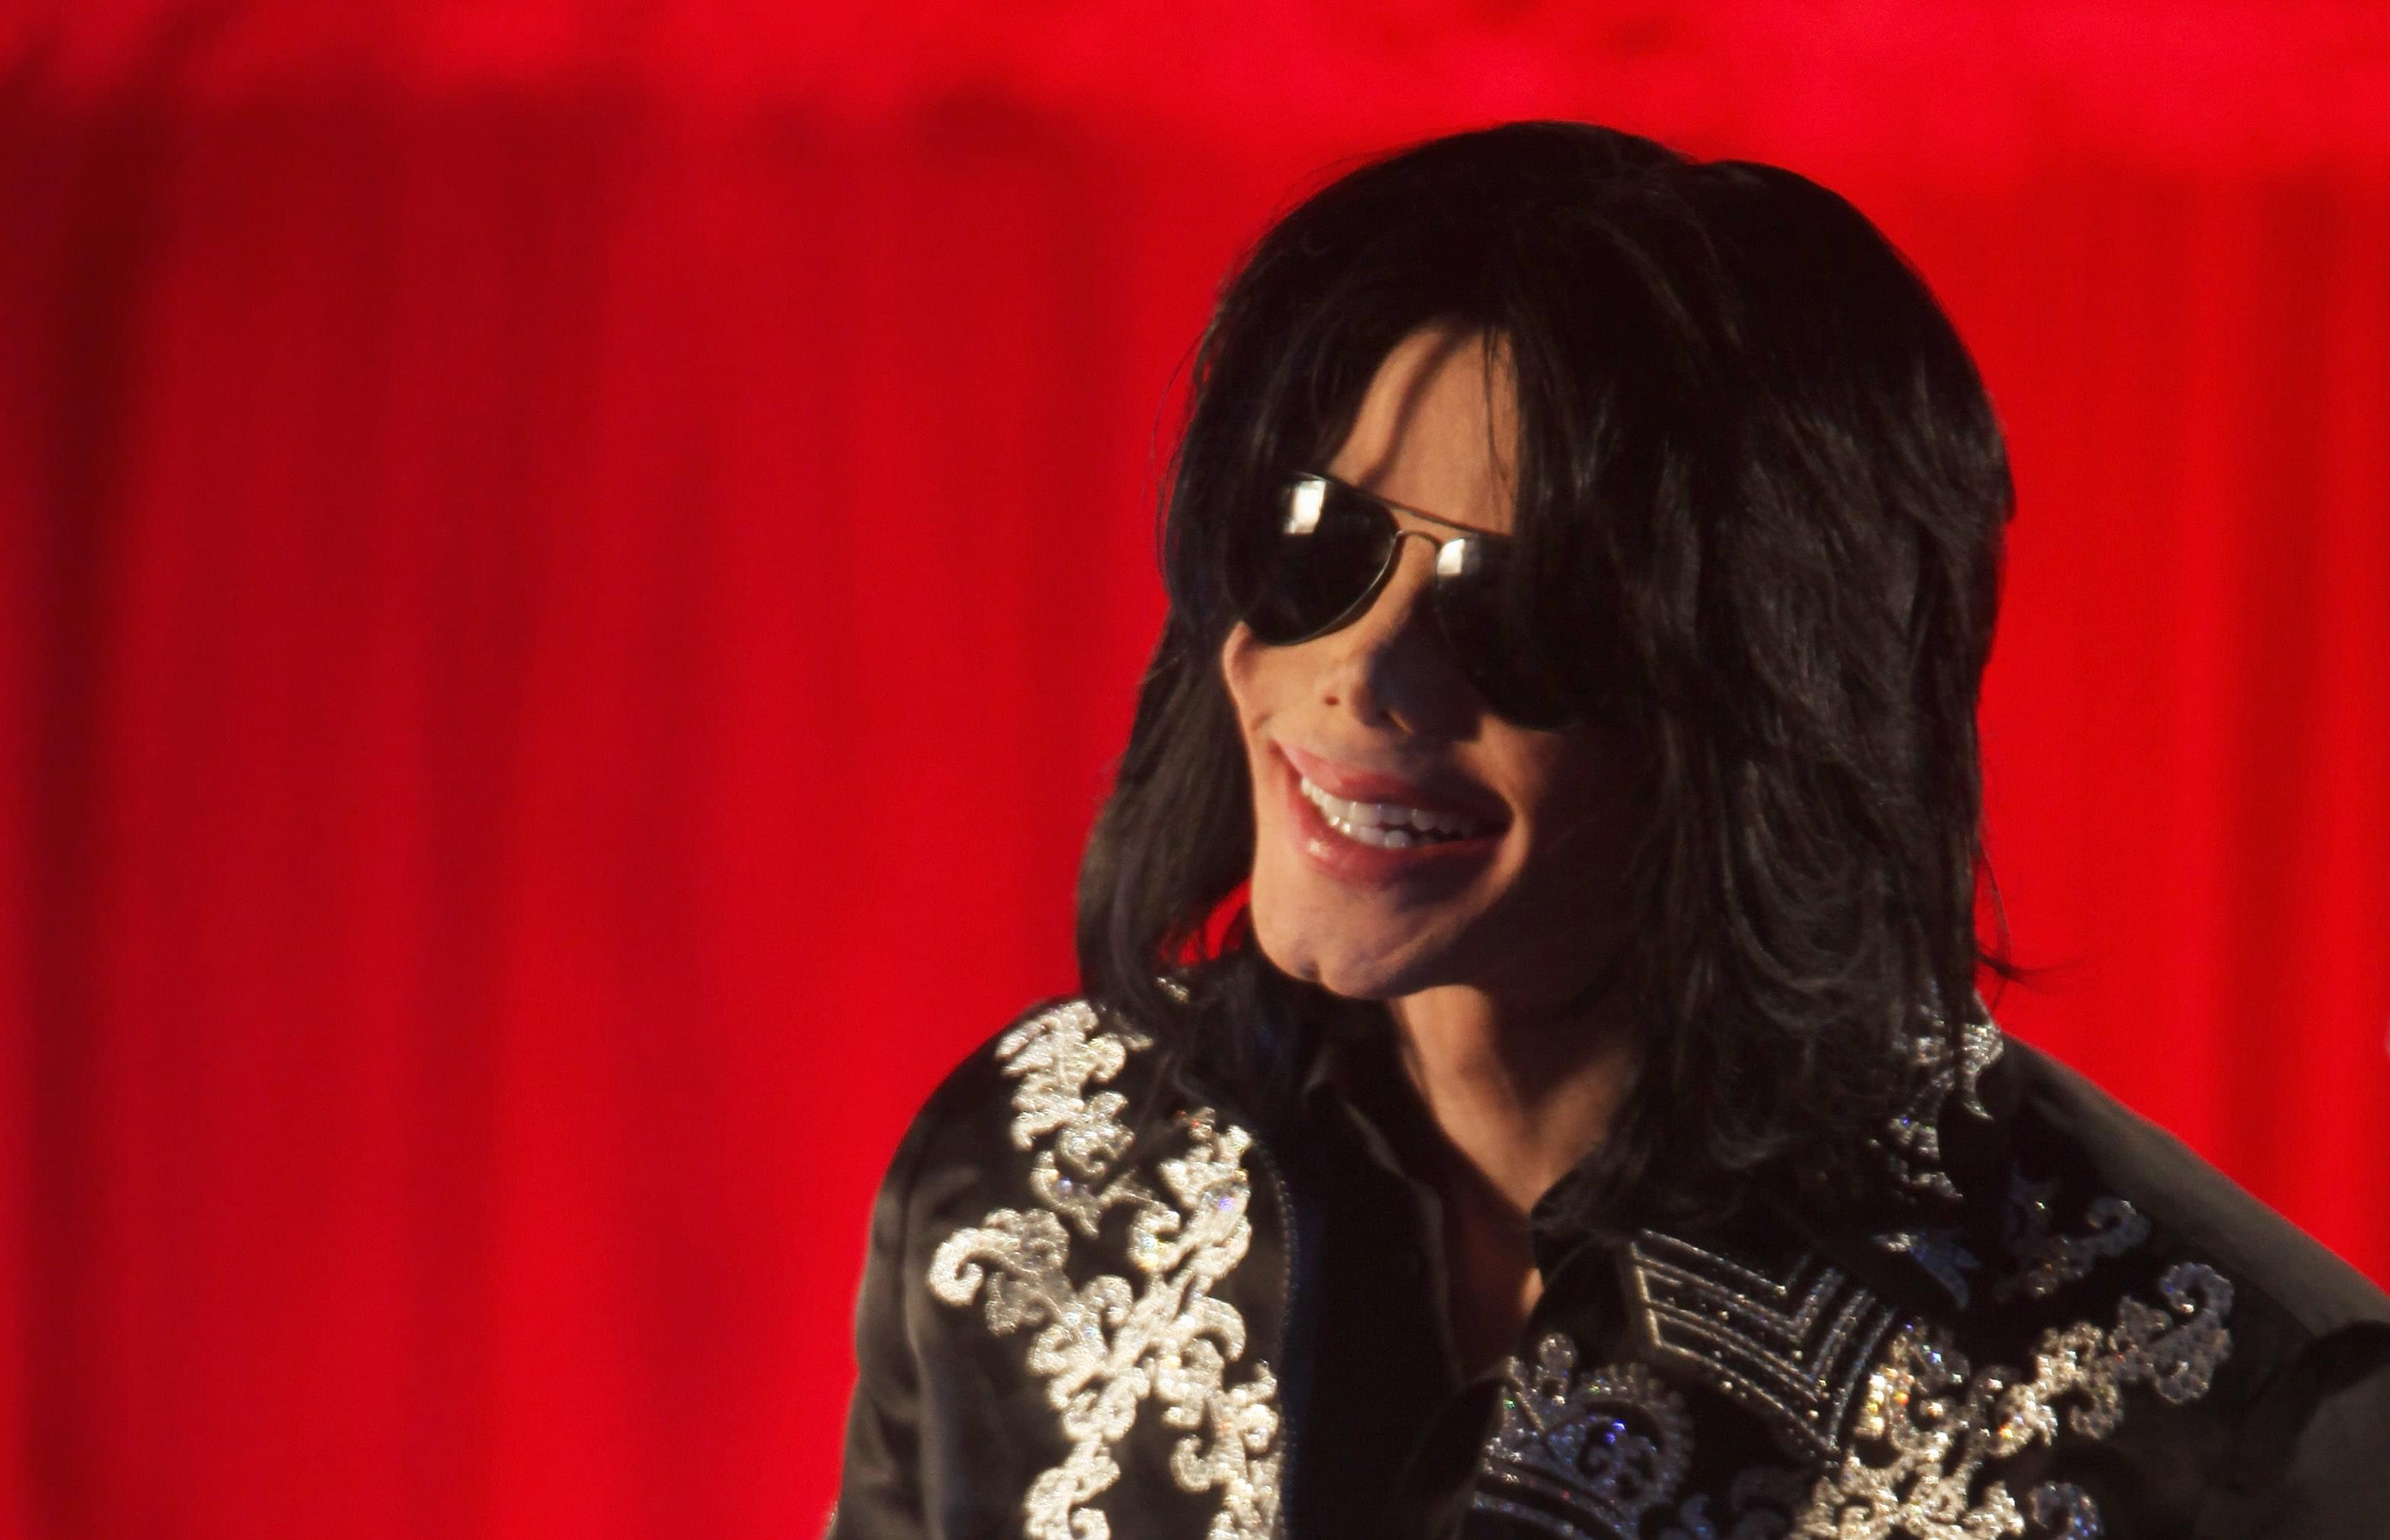 Michael Jackson's Life To Be Depicted In Broadway Musical